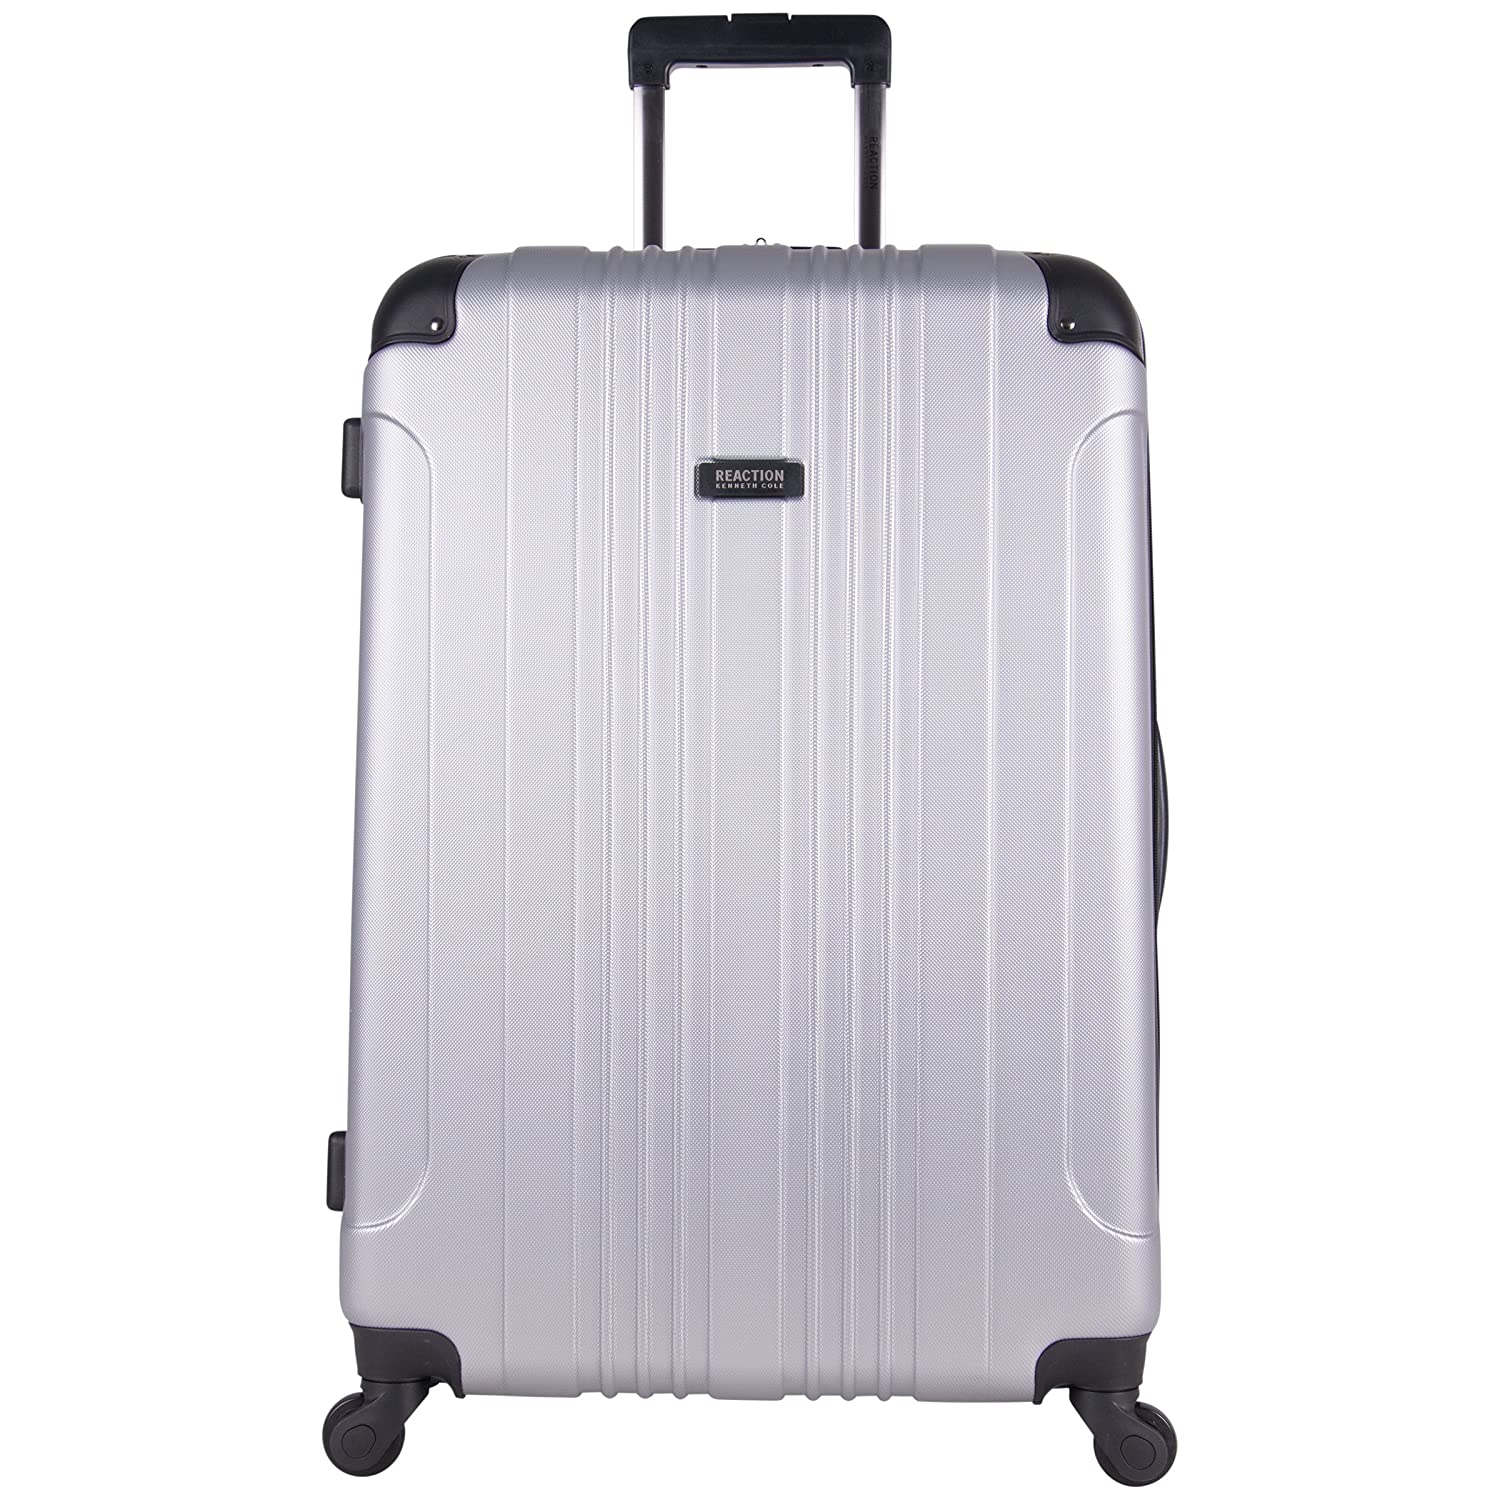 Kenneth Cole Reaction Out Of Bounds 28-Inch Check-Size Lightweight Durable Hardshell 4-Wheel Spinner Upright Luggage best spinner luggage